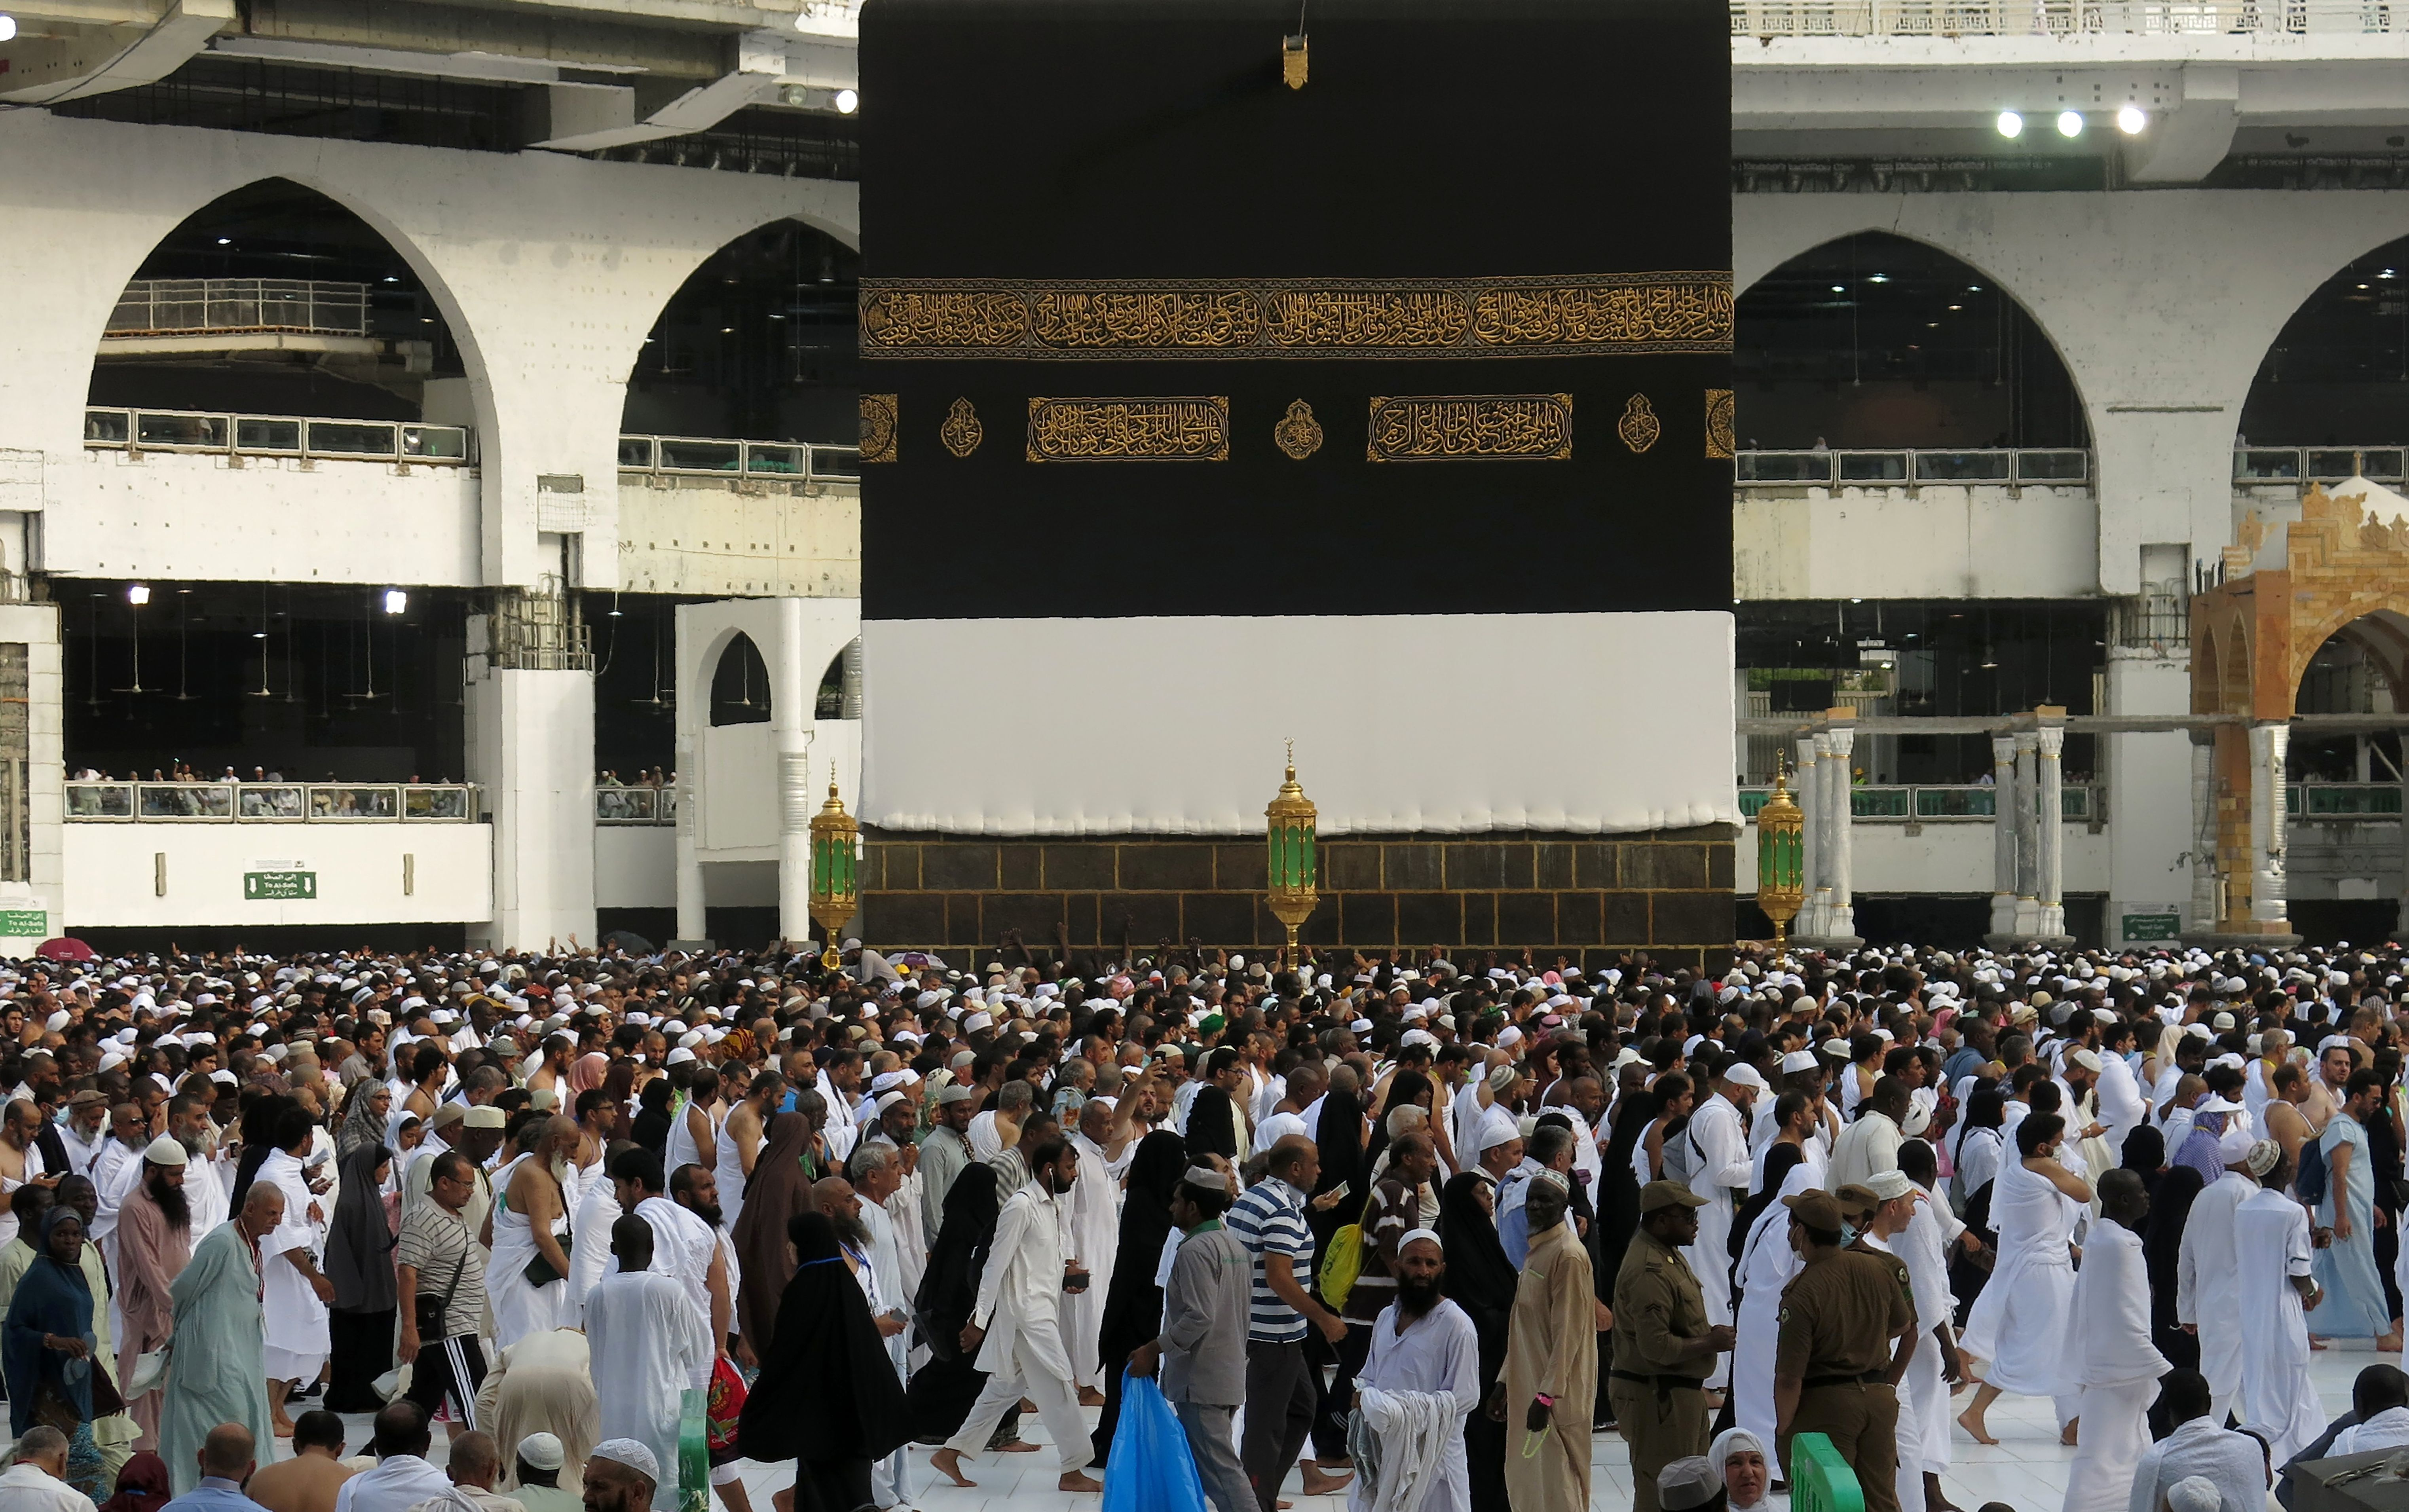 A picture taken on September 9, 2016 shows a general view of Muslim pilgrims from all around the world circling around the Kaaba at the Grand Mosque, in the Saudi city of Mecca. The annual Hajj pilgrimage begins on September 10, and more than a million Muslims have already flocked to Saudi Arabia in preparation for what will for many be the highlight of their spiritual lives.  / AFP / AHMAD GHARABLI        (Photo credit should read AHMAD GHARABLI/AFP/Getty Images)